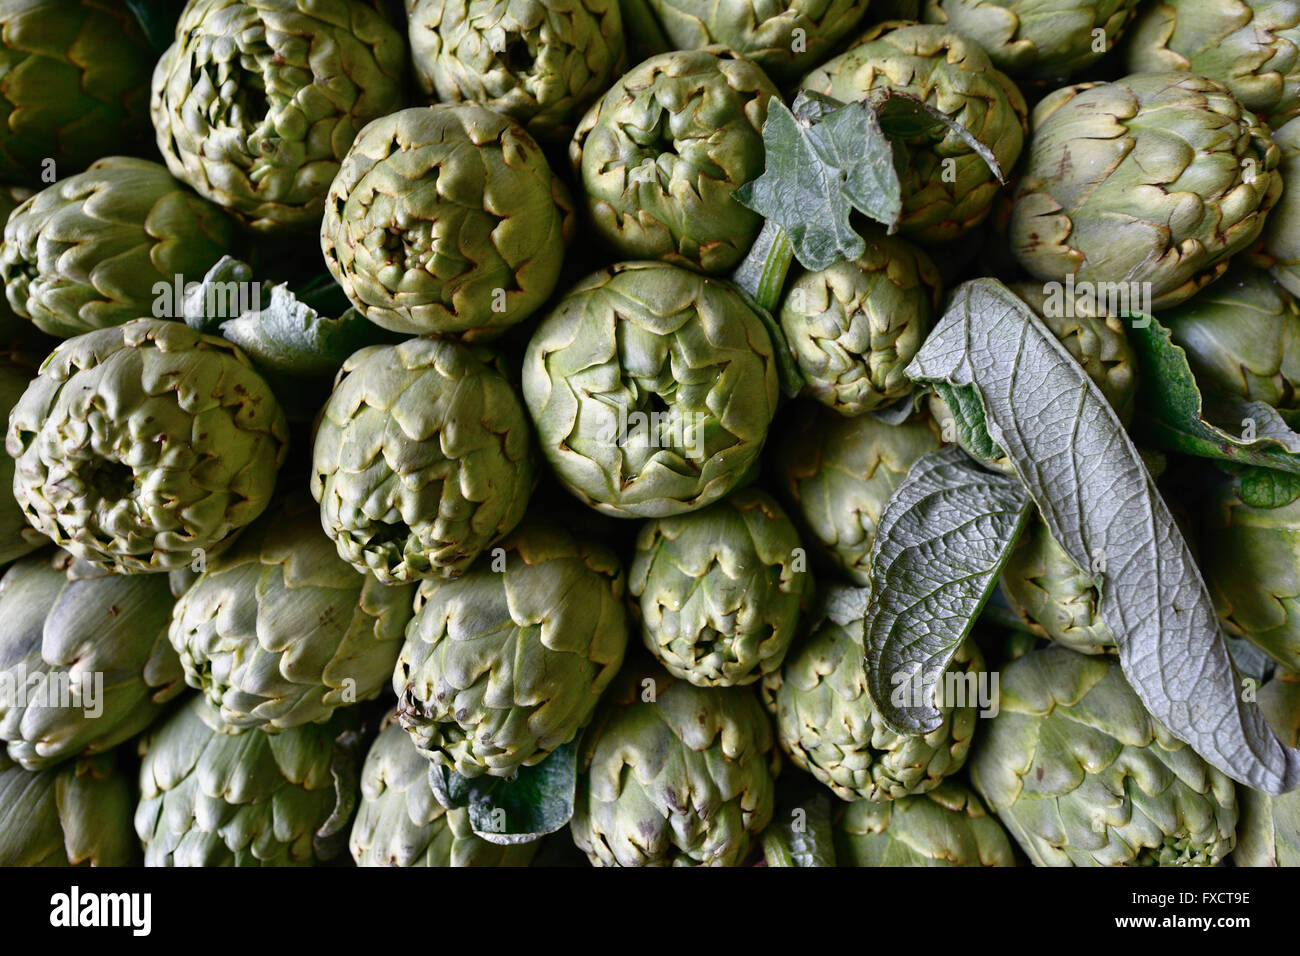 The globe artichoke - Cynara cardunculus var. scolymus - is a variety of a species of thistle cultivated as a food. - Stock Image